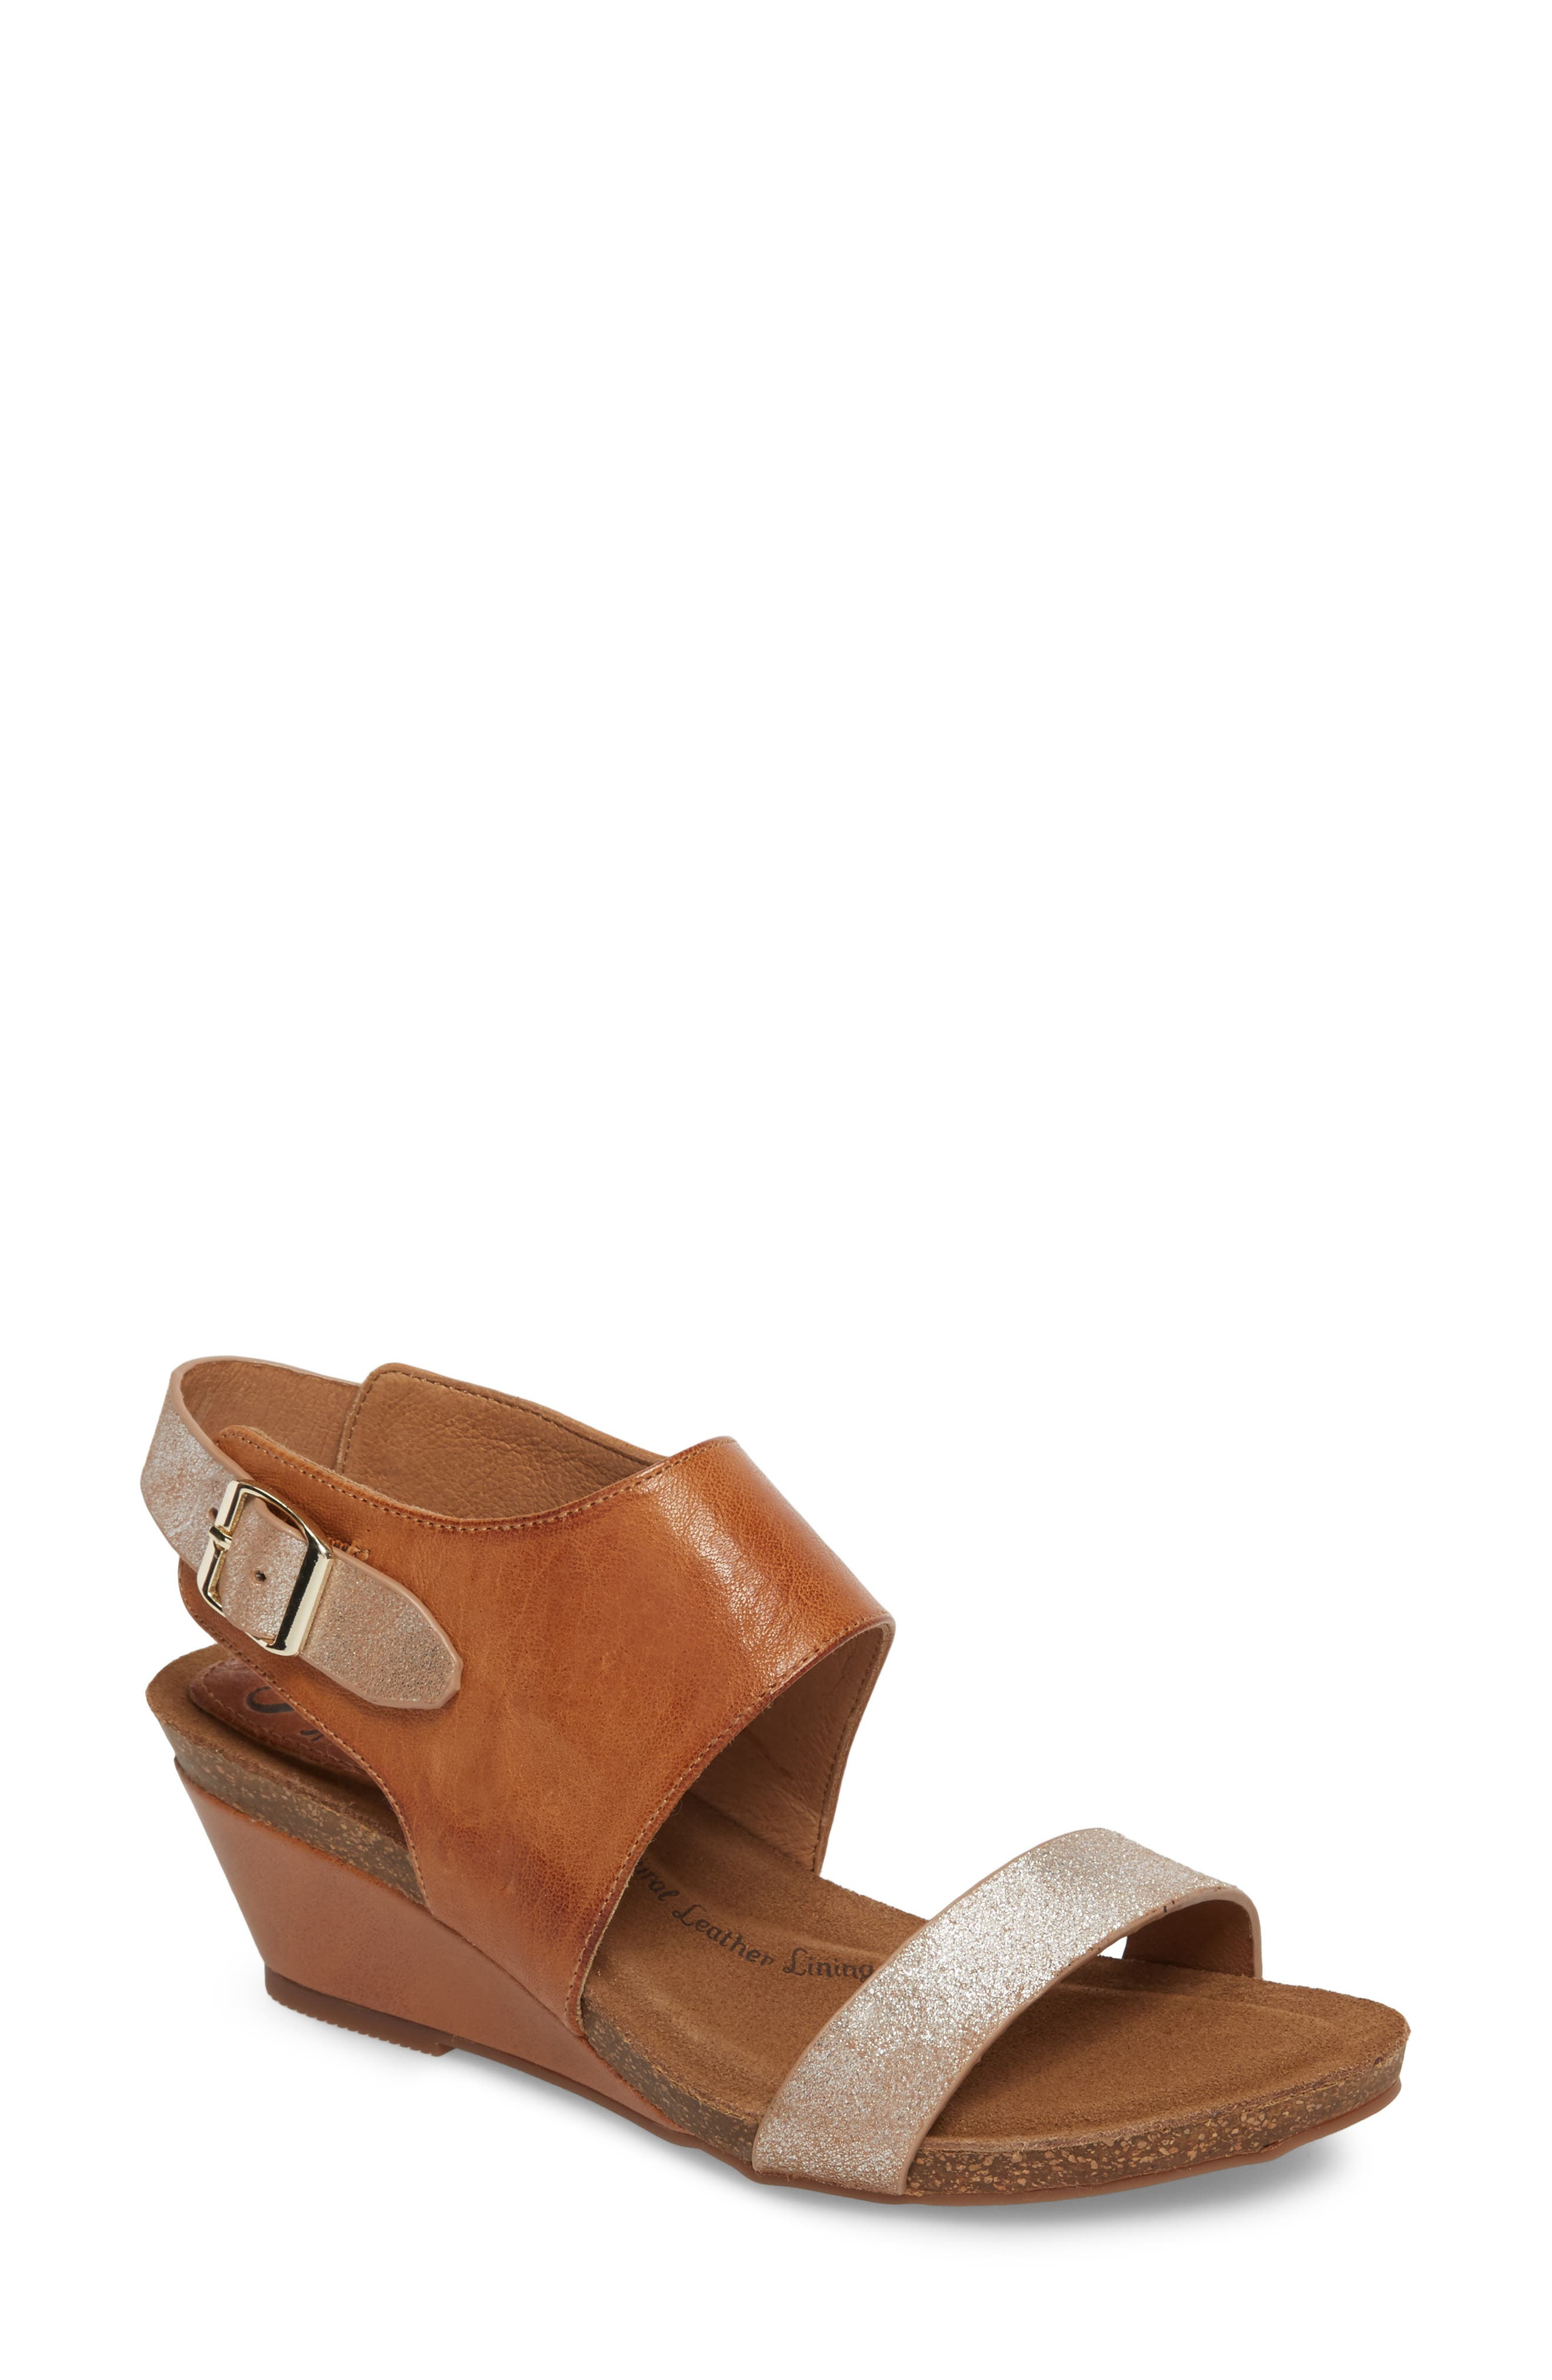 'Vanita' Leather Sandal,                         Main,                         color, LUGGAGE/ SILVER LEATHER